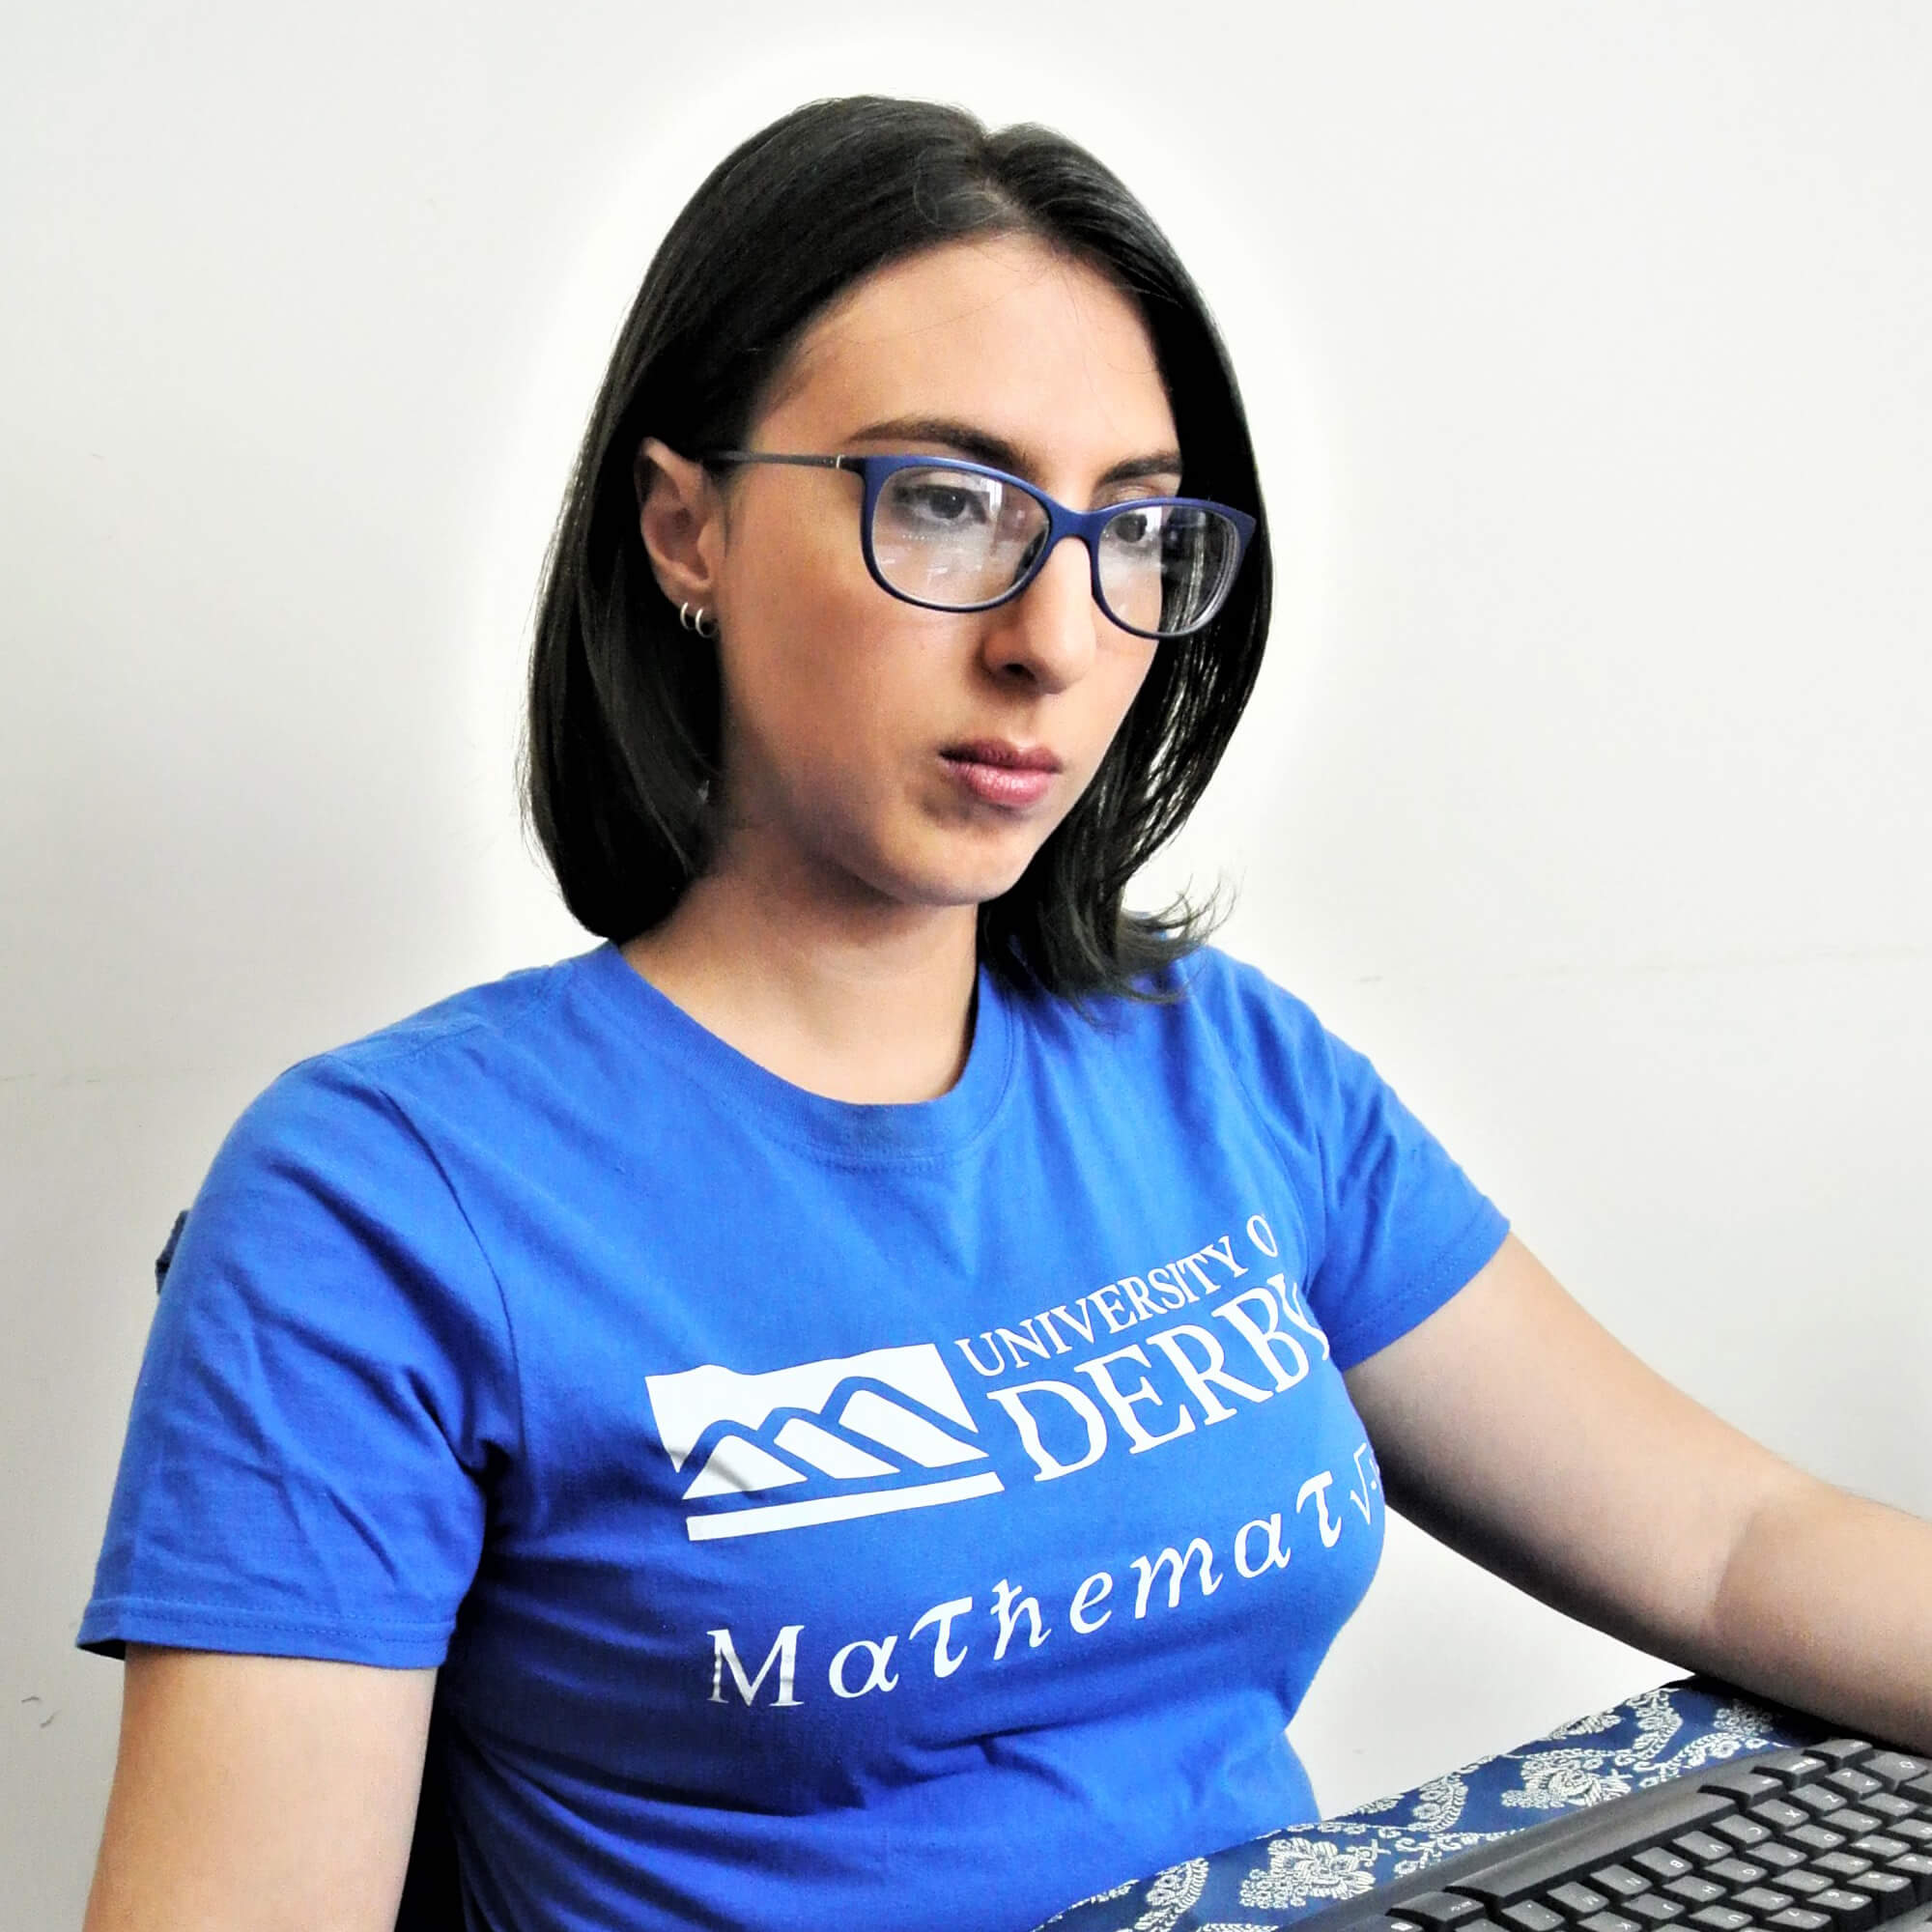 Lucia sitting at a computer wearing a University of Derby Mathematics t-shirt